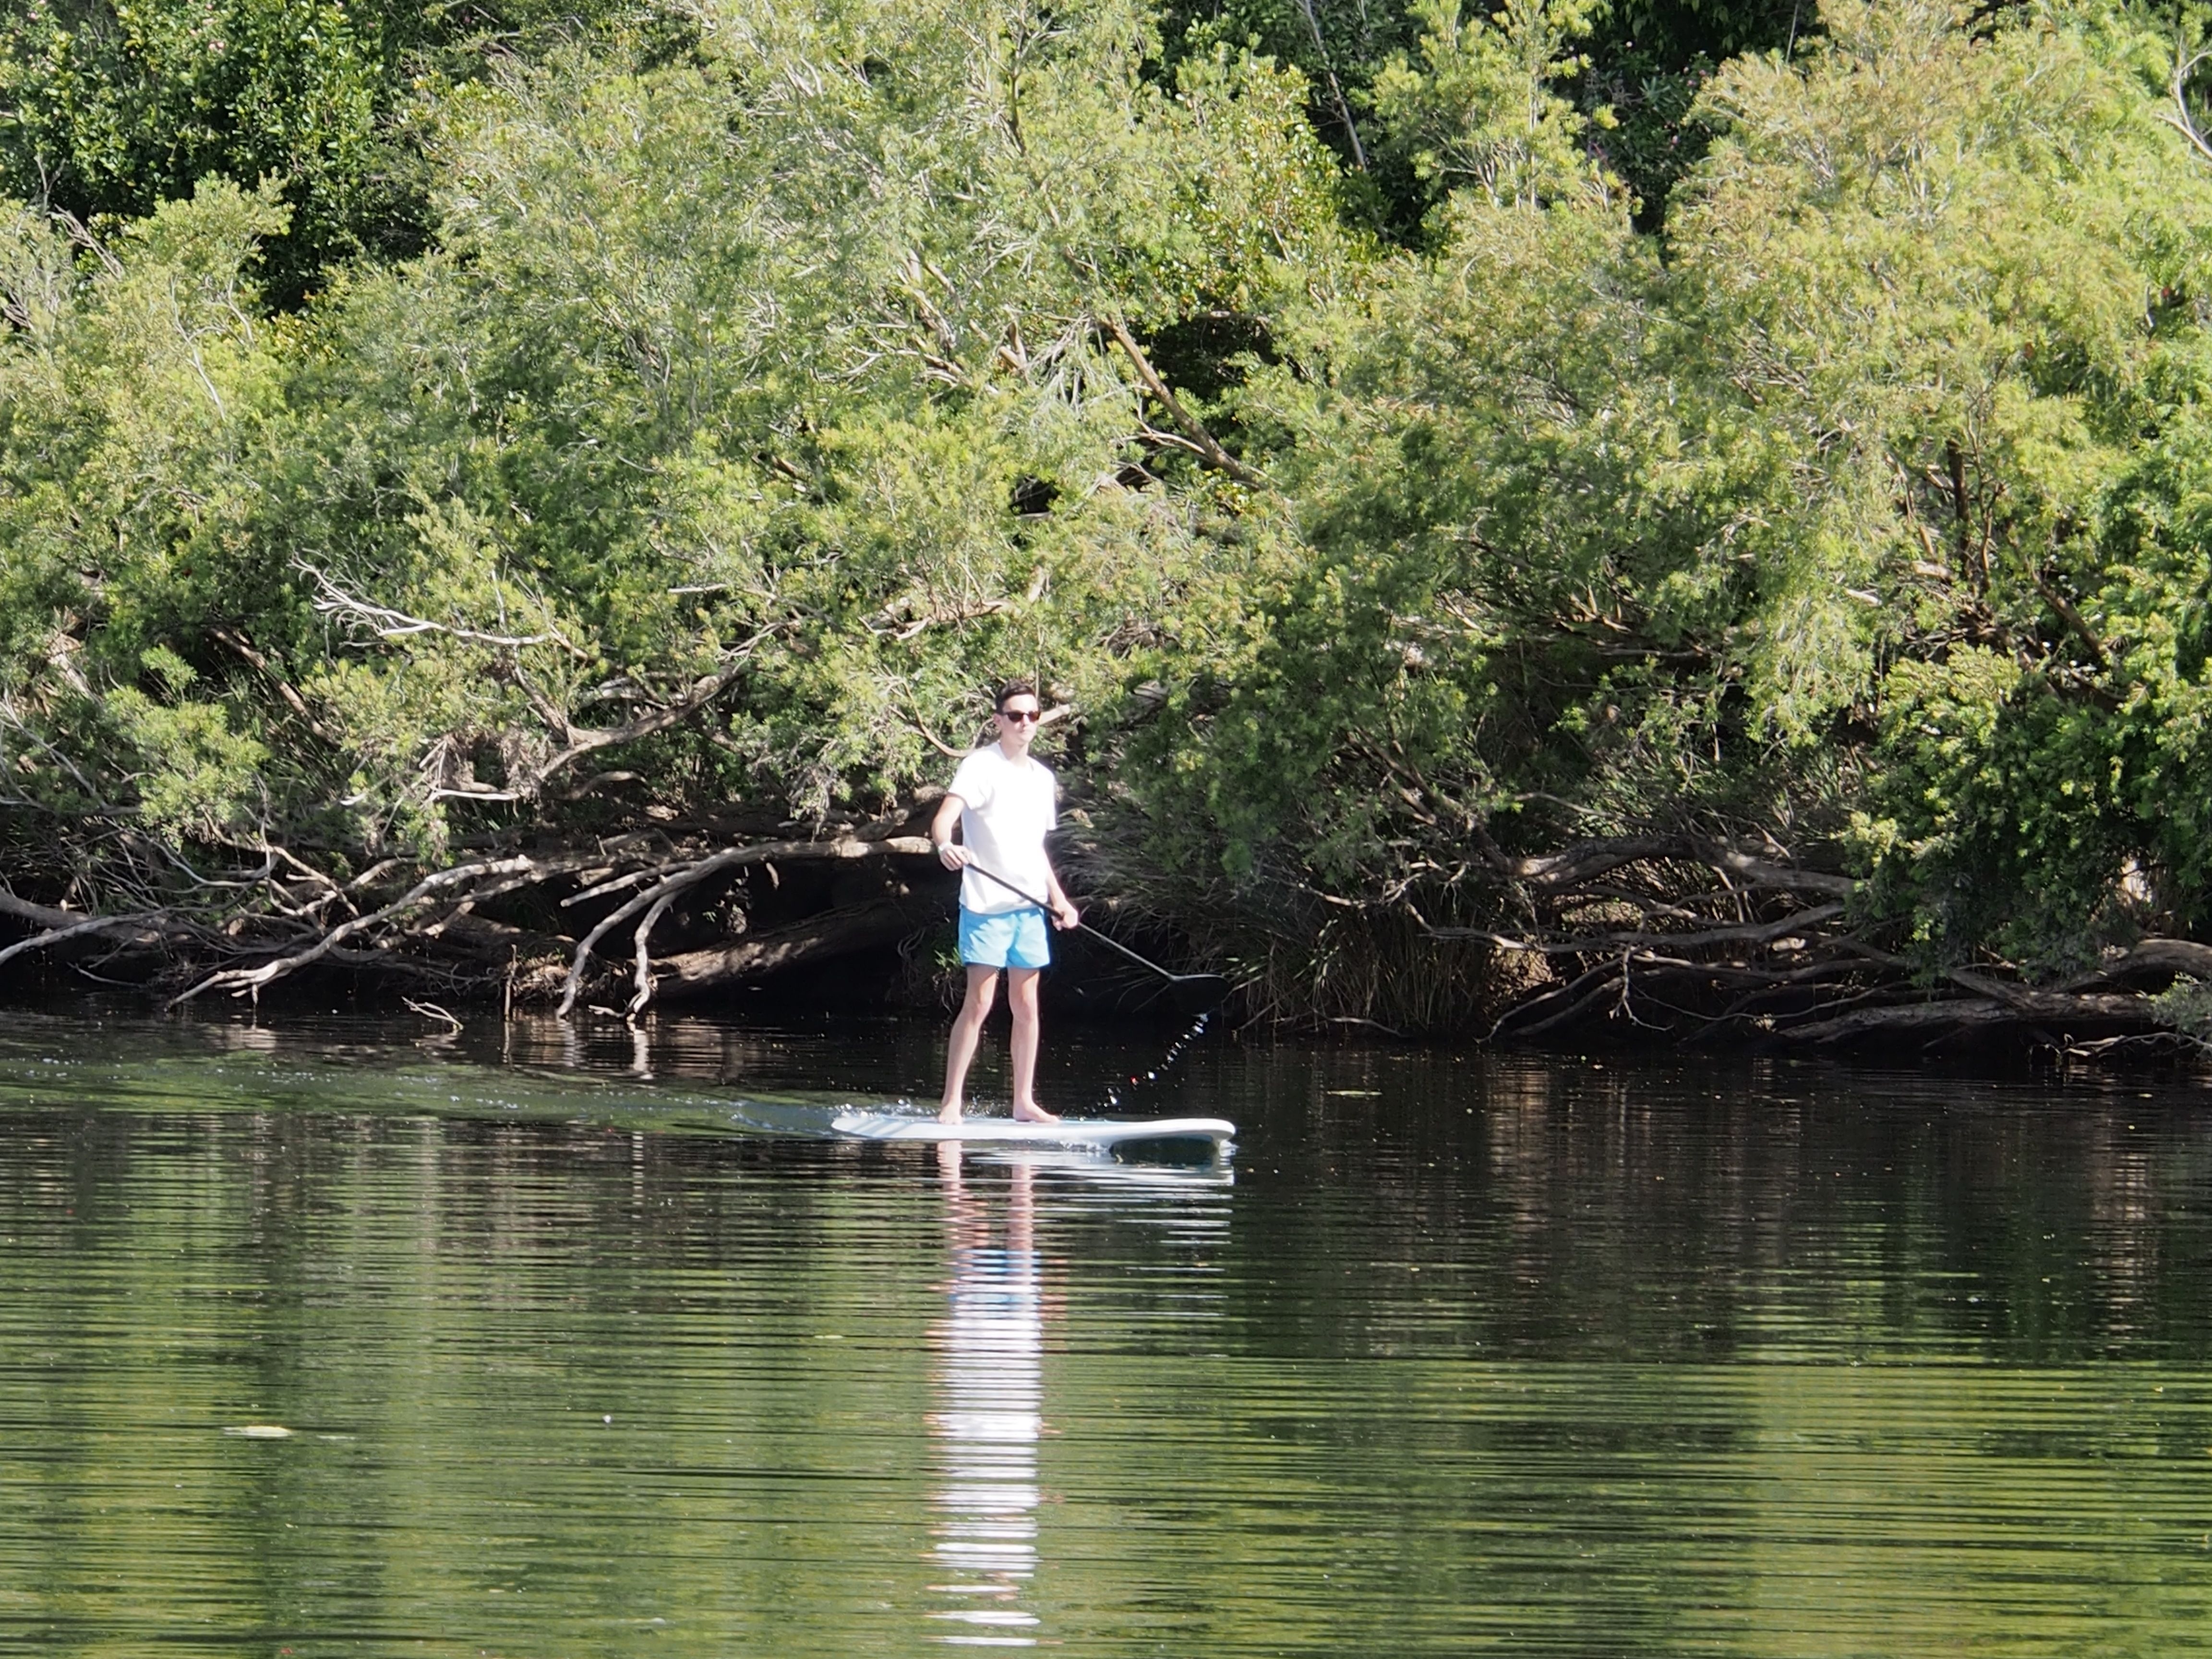 River - Paddle Board.JPG